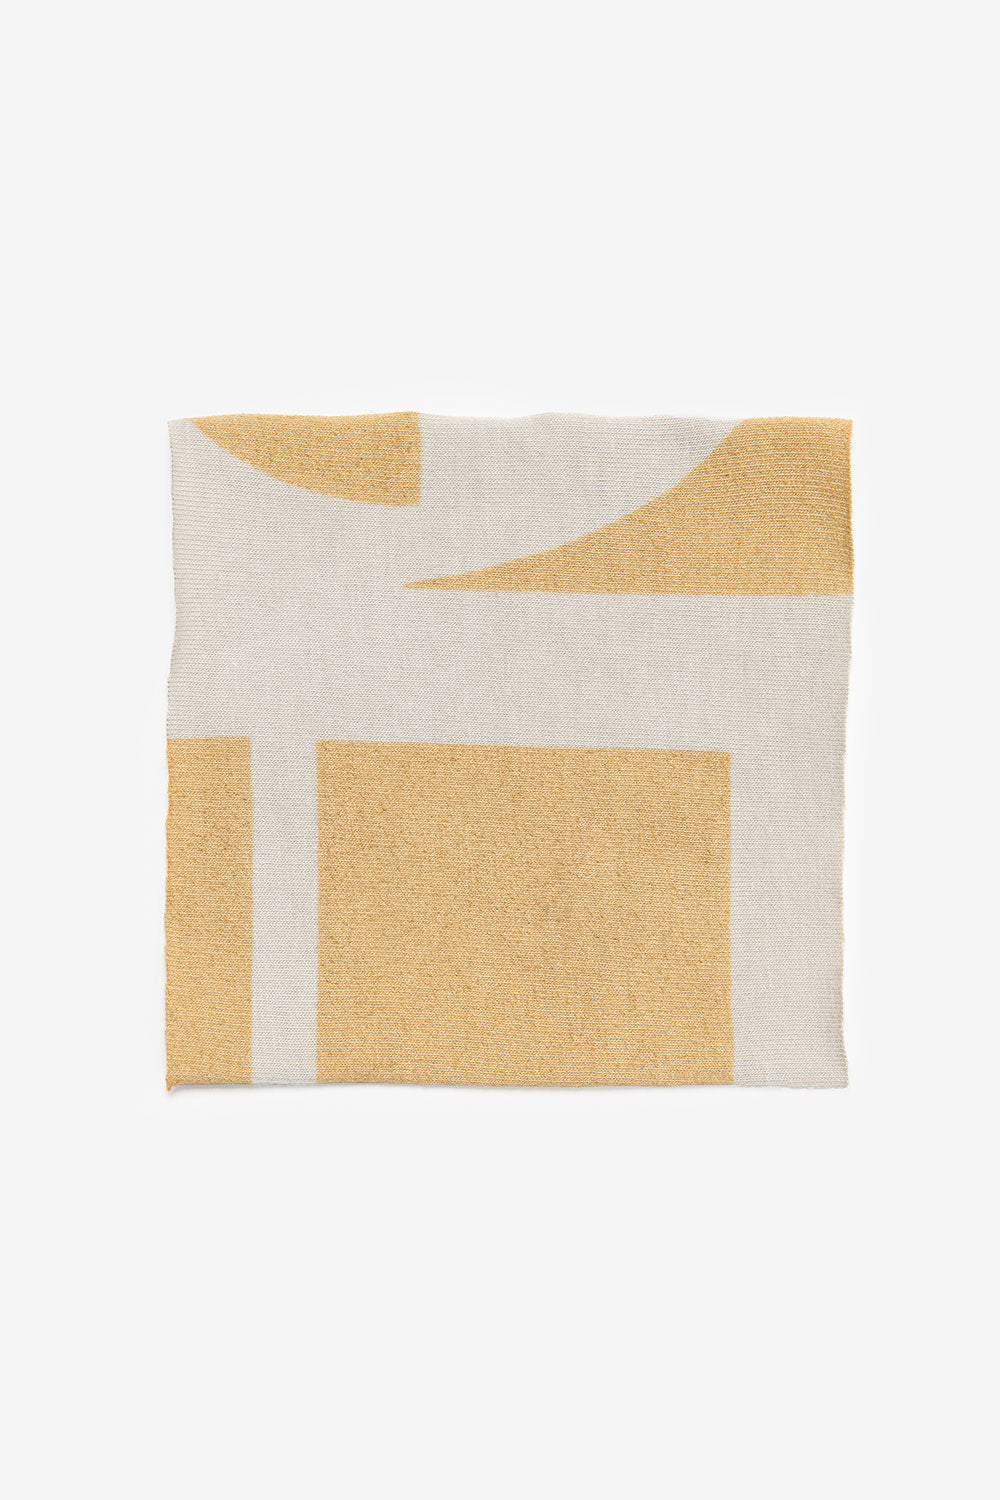 The School of Making Organic Cotton Swatches Abstract Metallic Stencil Design